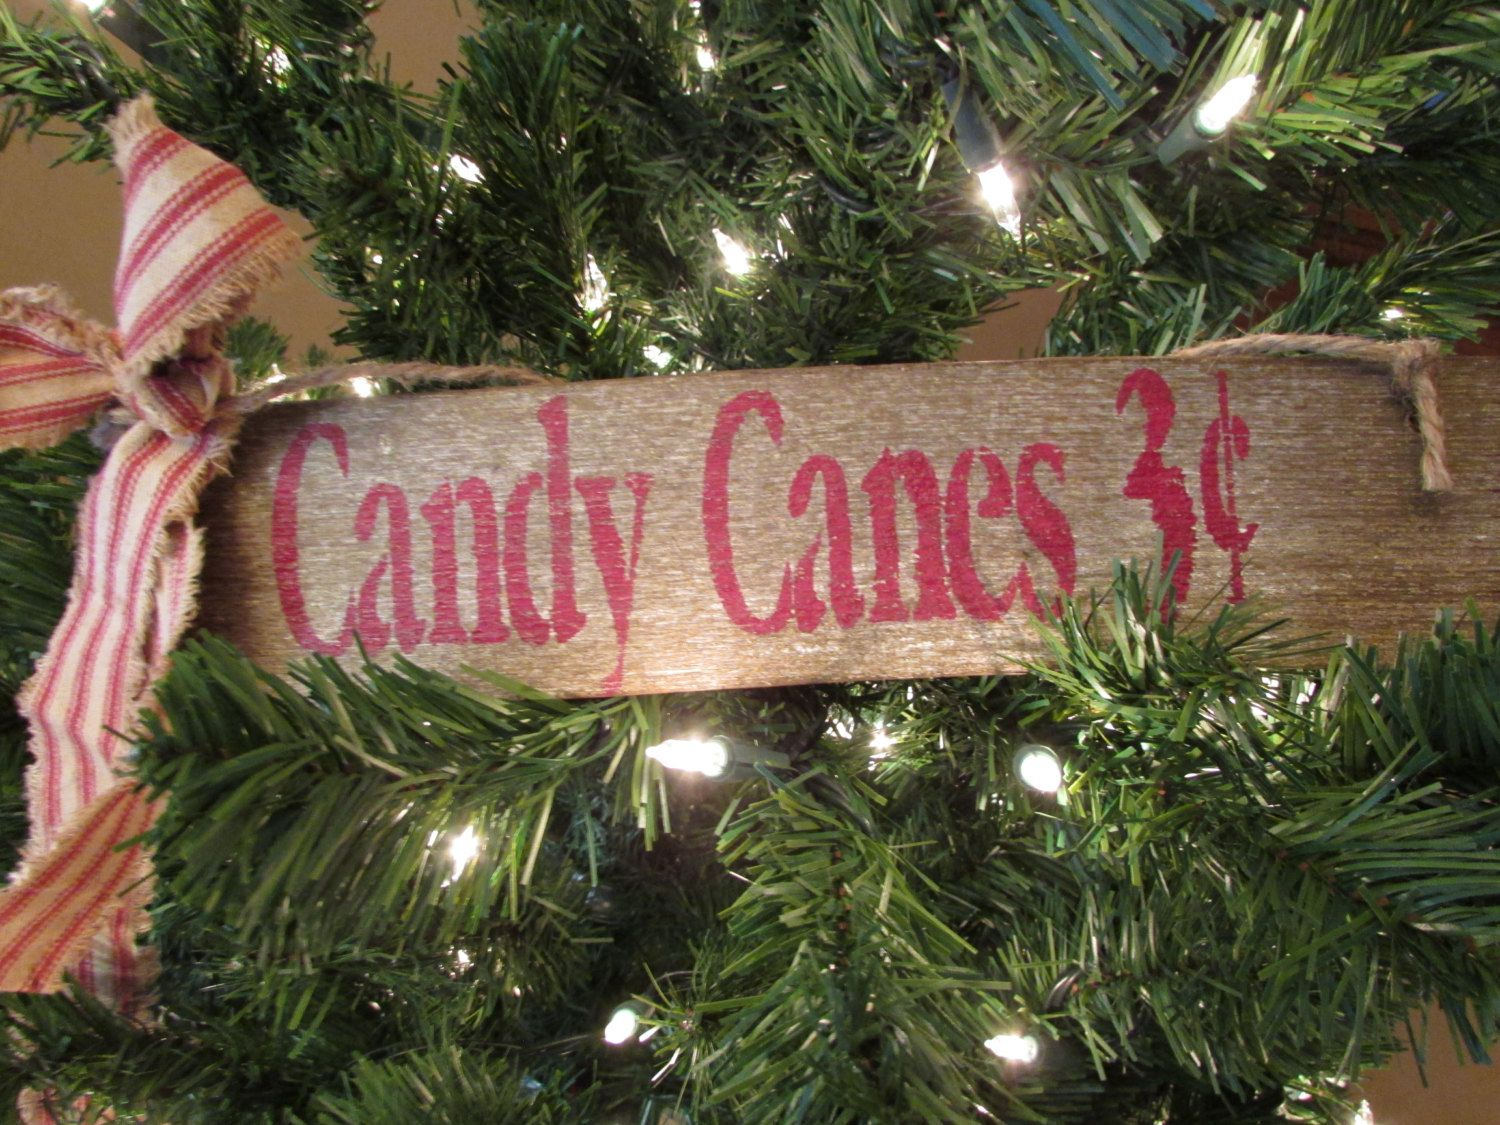 Primitive Candy Cane Sign by Cherriesprimitives on Etsy https://www.etsy.com/listing/211199399/primitive-candy-cane-sign